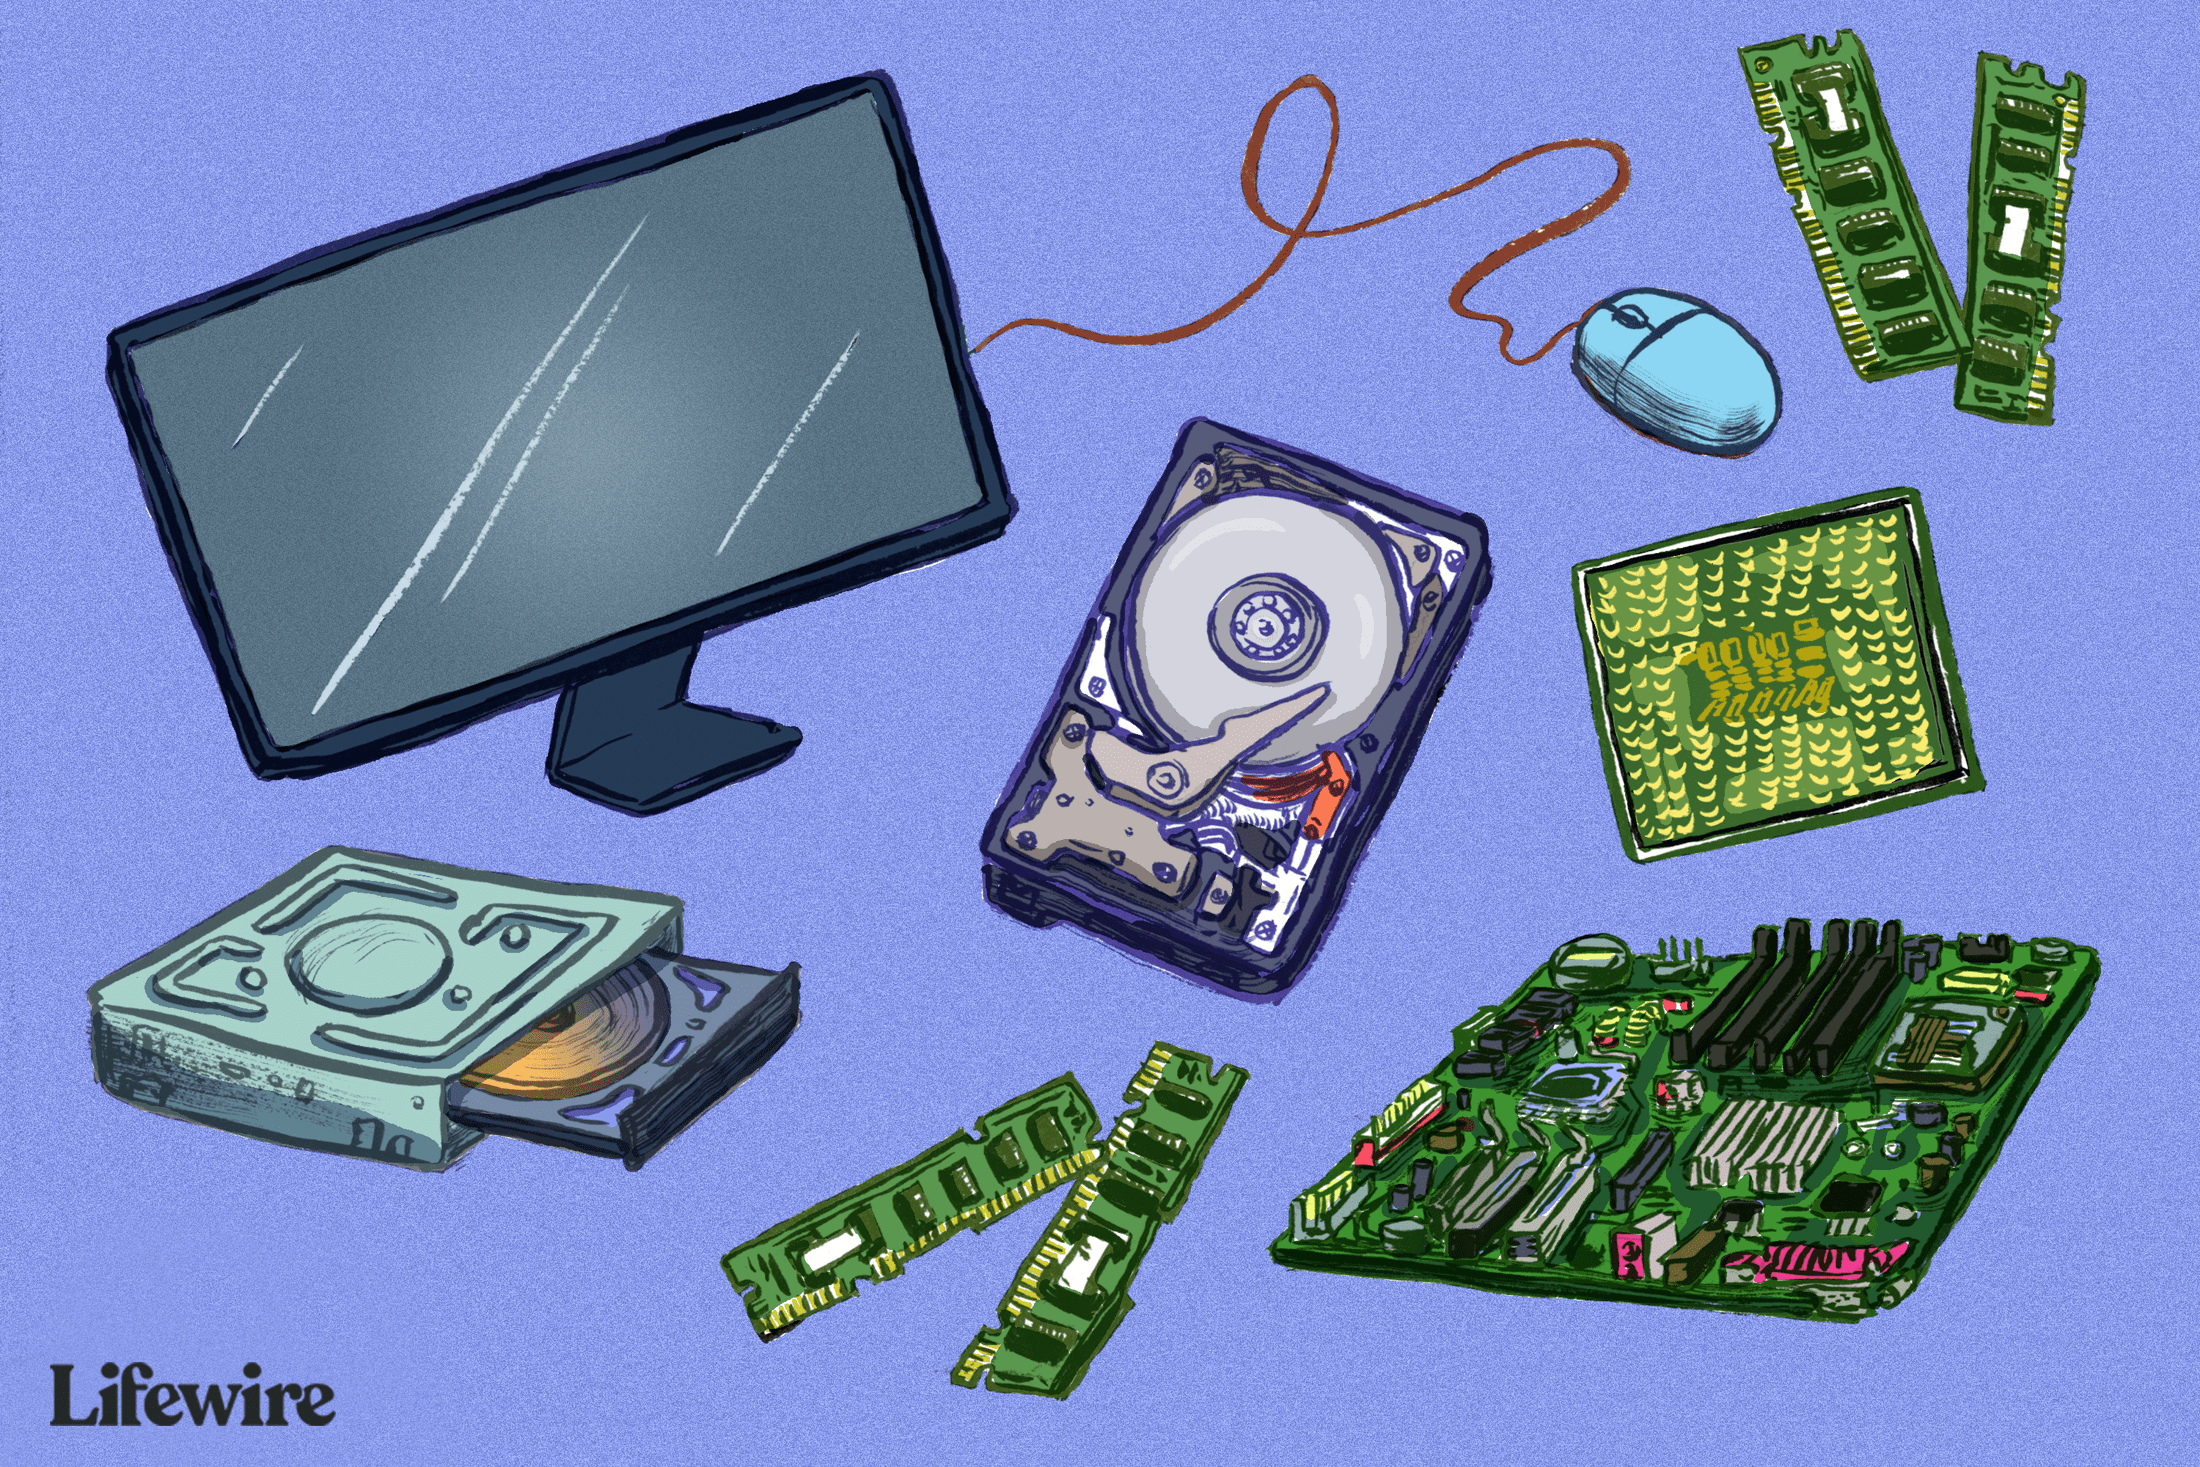 Illustration of various computer hardware, including hard drive, RAM, motherboard, monitor, mouse, and optical drive